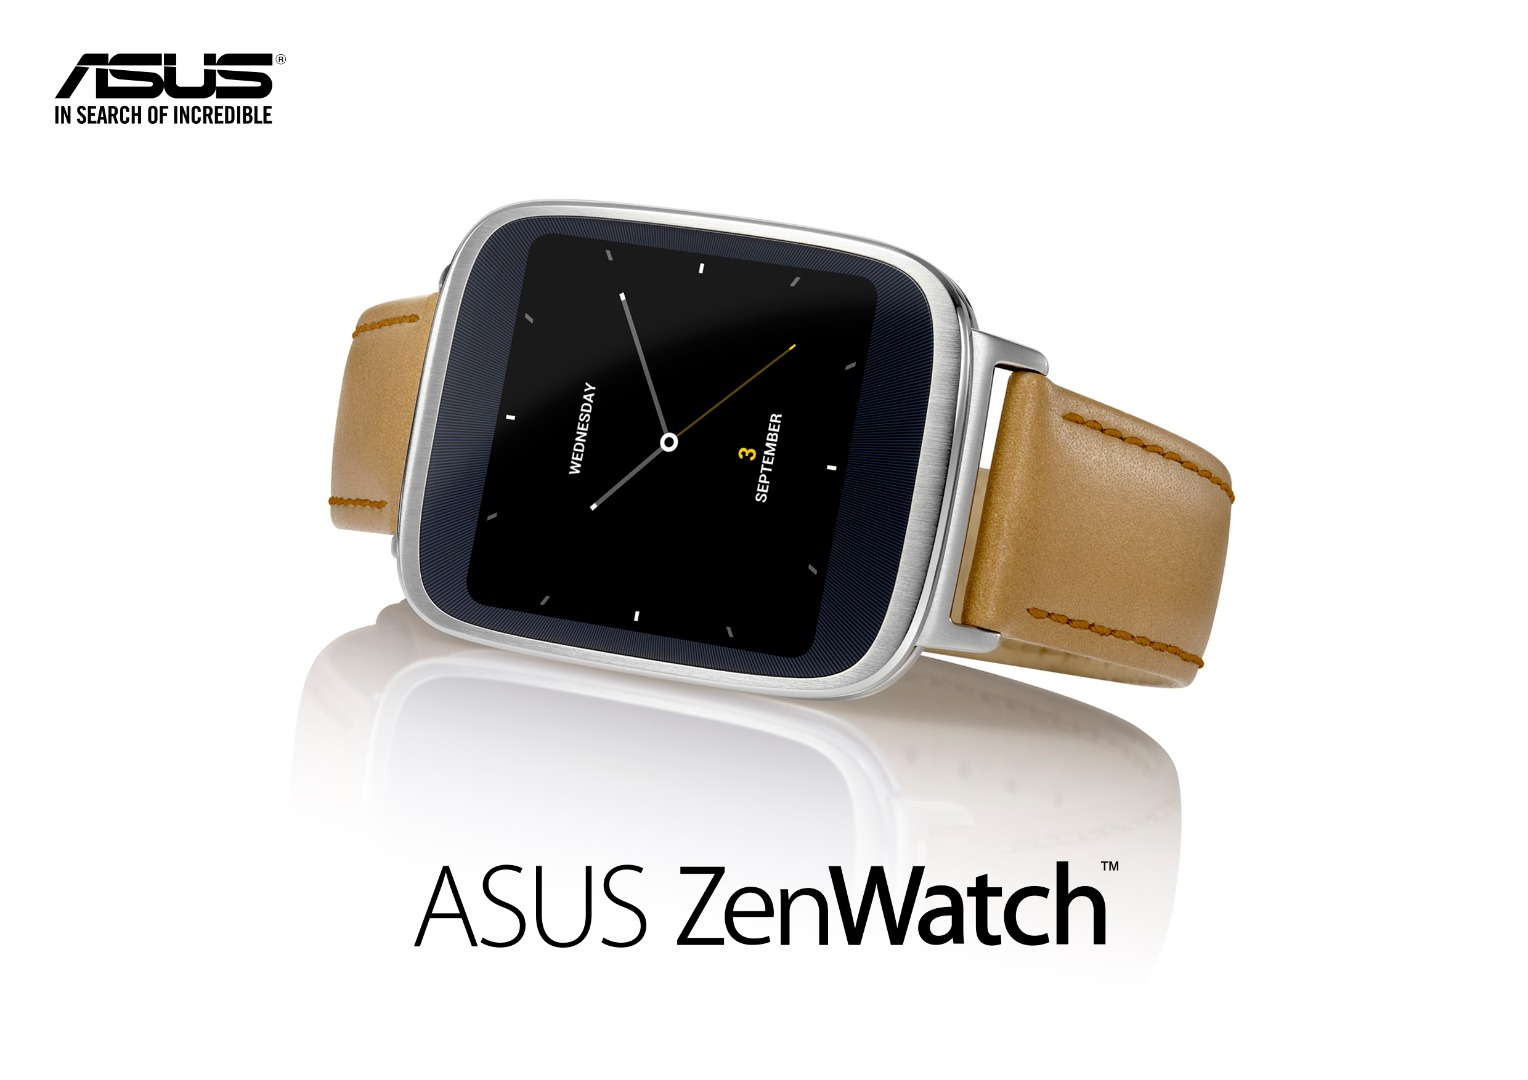 ASUS ZenWatch, lansat la IFA 2014. Un smartwatch cu stil [VIDEO]